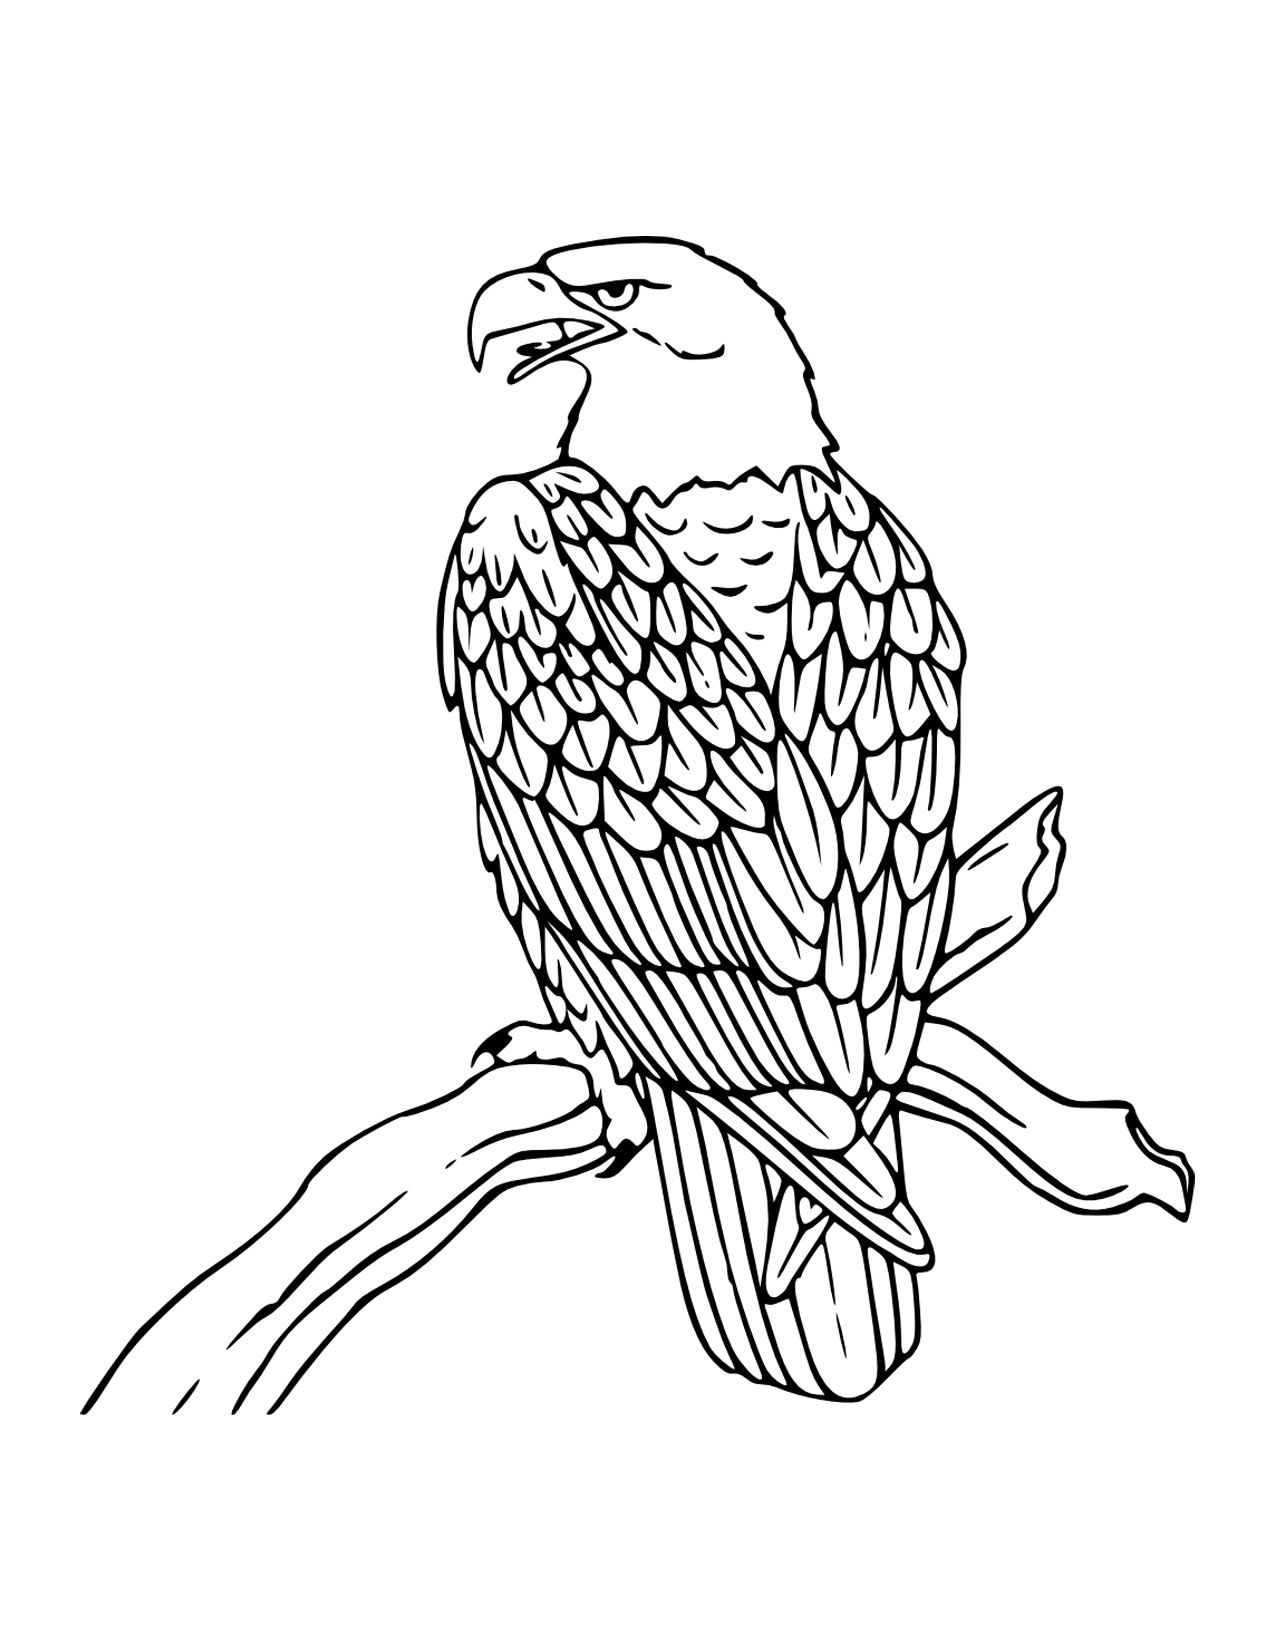 free printable coloring pages eagle free printable bald eagle coloring pages for kids eagle coloring pages free printable eagle